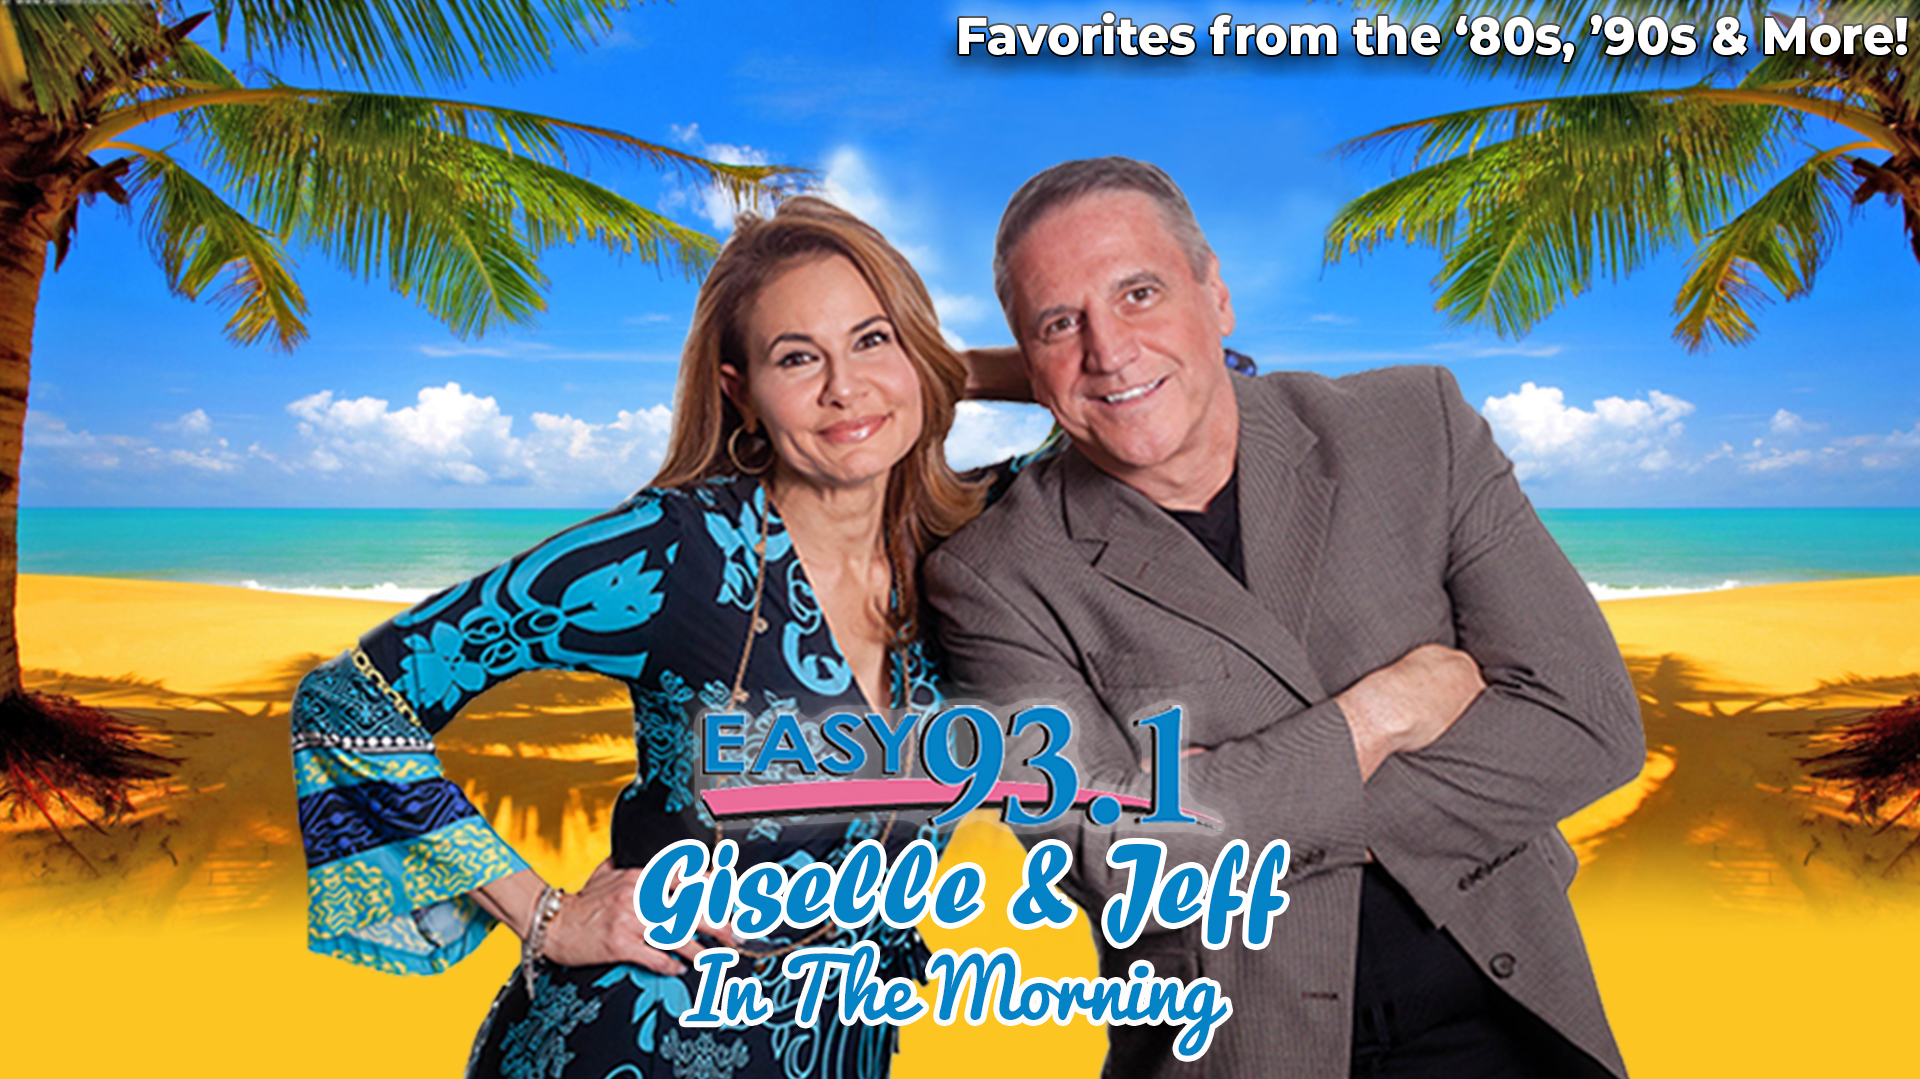 Giselle & Jeff In The Morning